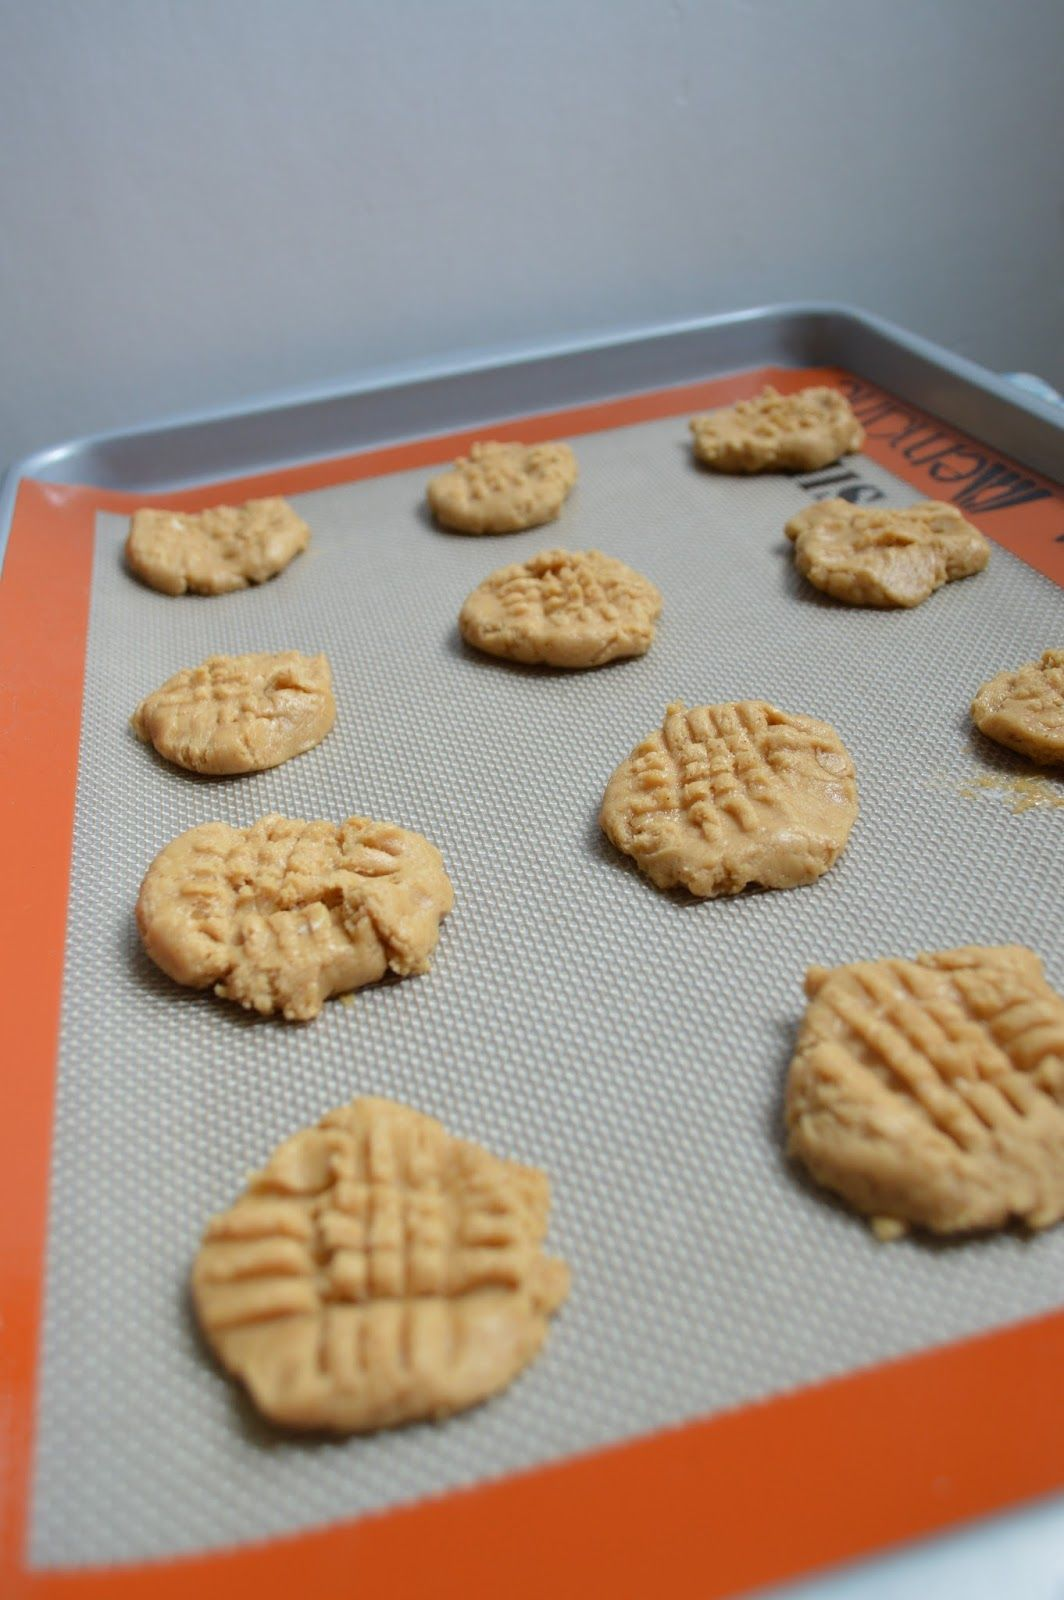 Two Spoonfuls- Peanut Butter Banana Cookies